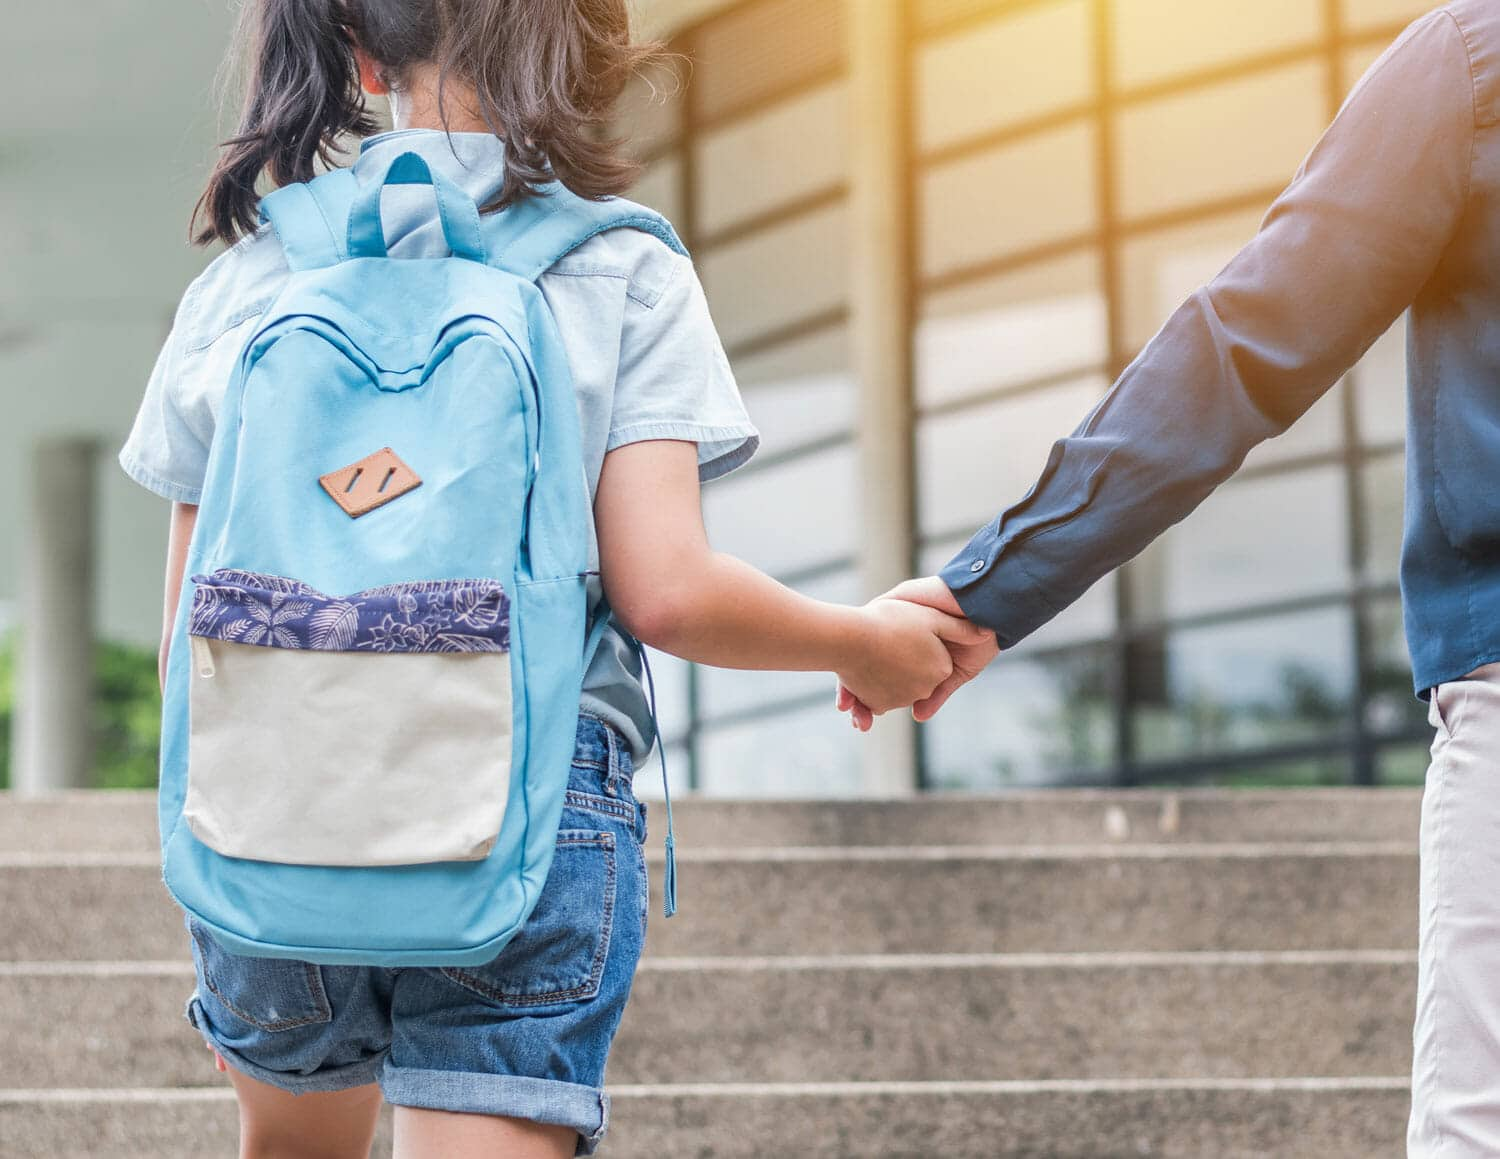 Can I Transfer My Child(ren) to Another School?